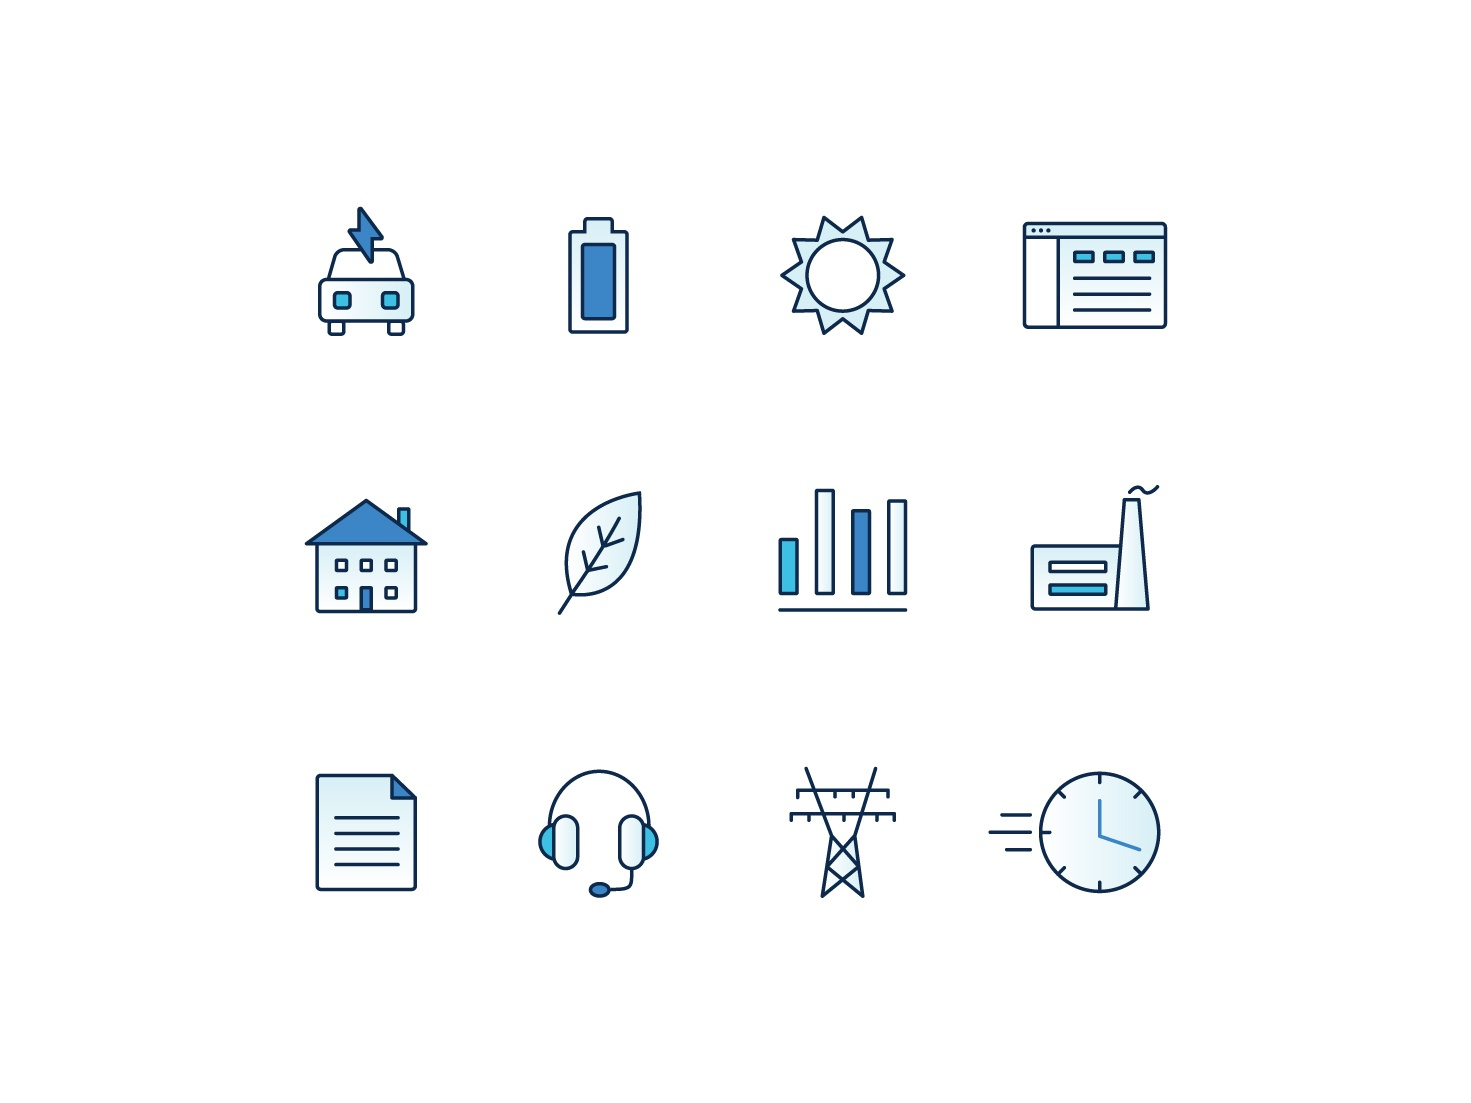 Iconography clean energy ui icons uidesign website web design icon icons iconography